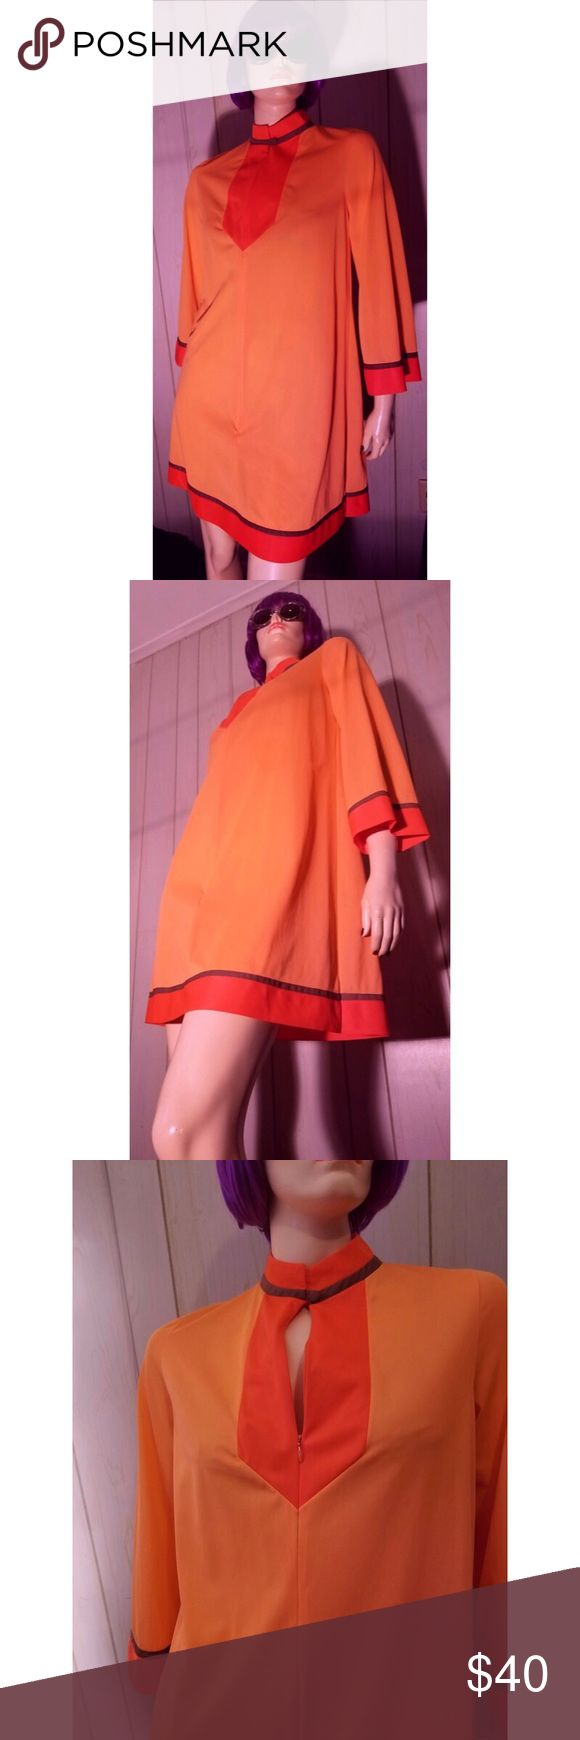 "VTG 60s GOSSARD ARTEMIS MOD Neon Colorblock Robe Ultra MOD SWANKY vintage 60s short flairy robe/housecoat by GOSSARD ARTEMIS in bright NEON orange silky Nylon. Color-block detail at neckline, slvs & hem, Zip down front, fabric covered button at neckline, side hip pocket. Would make a seriously GROOVY mini dress! SZ:S Bust:up to app 36"" Lgth:Approx 26"" underarm-hem Waist:up to 36"" Hips:up to 42"" Label:Gossard Artemis (Great lingerie co. that's been around for >100 yrs!) 100% Nylon…"